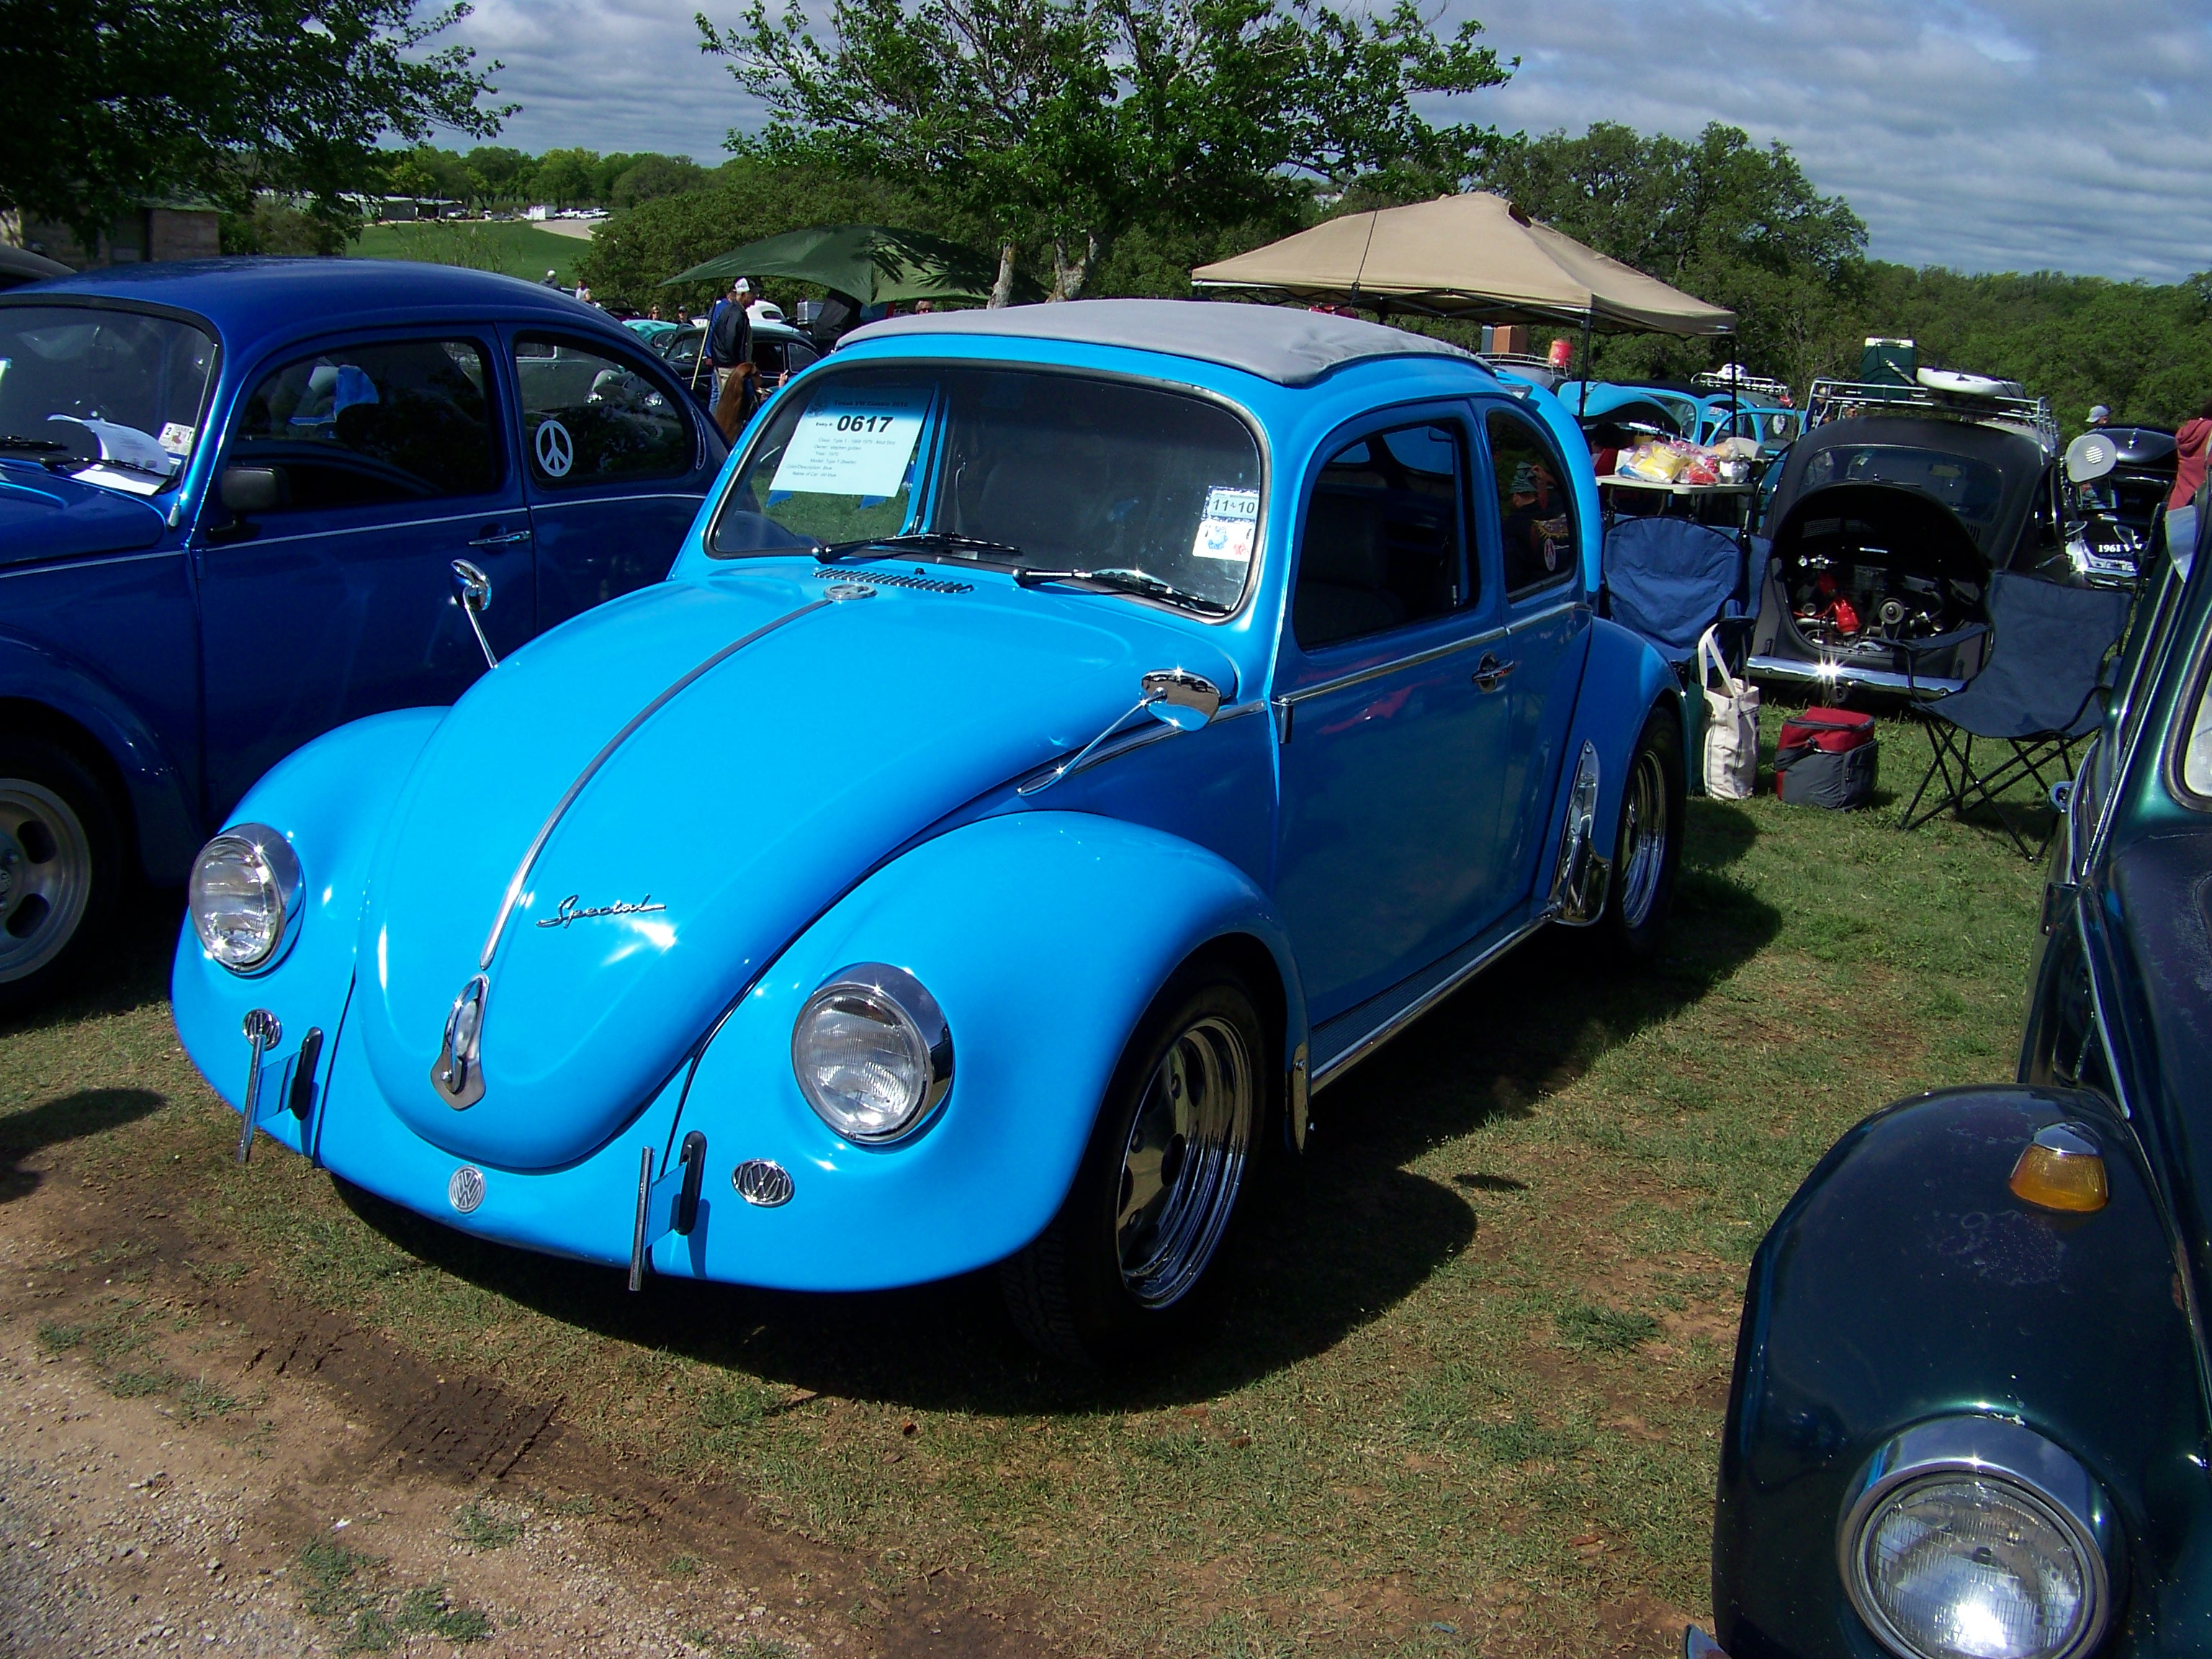 Old Blue 0617 Texas Vw Classic